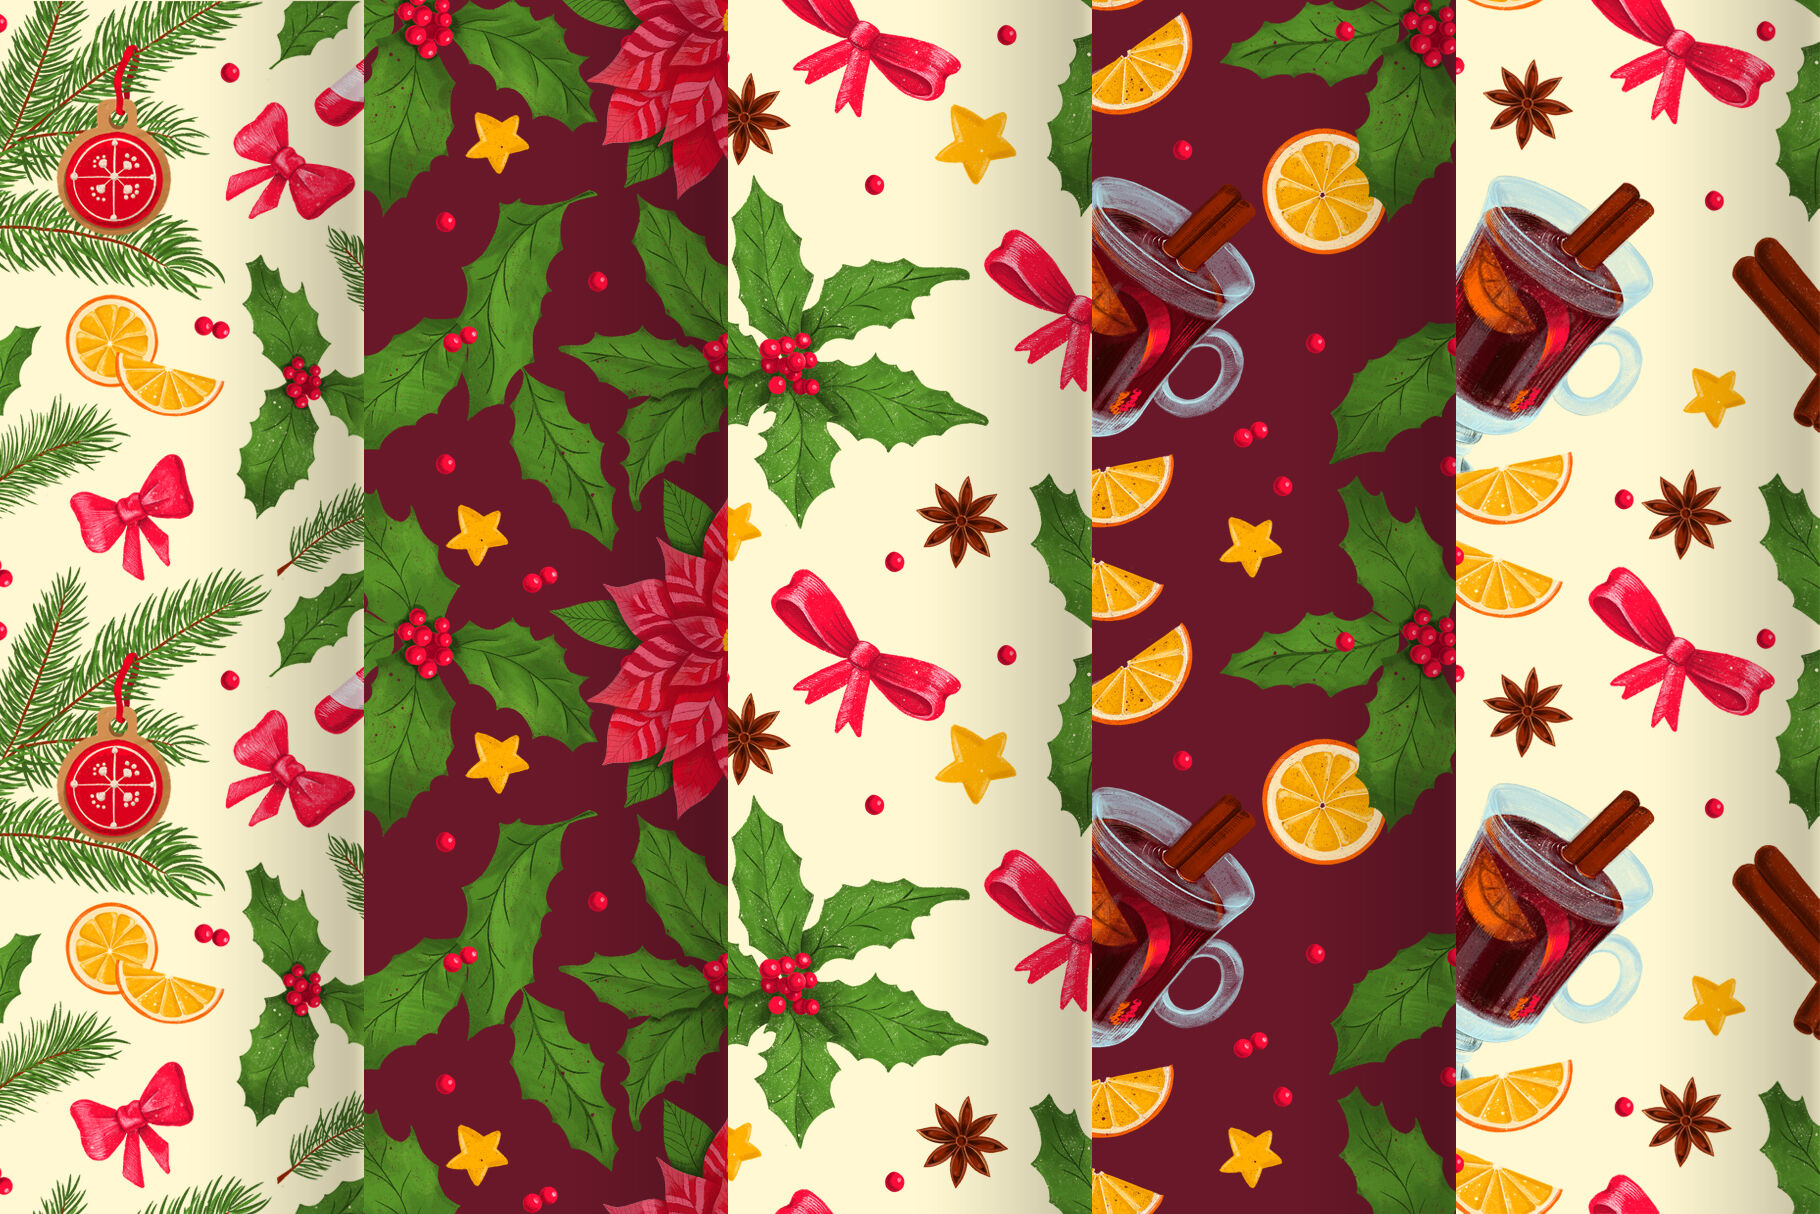 Christmas Digital Illustration Set By Kite Shop Thehungryjpeg Com